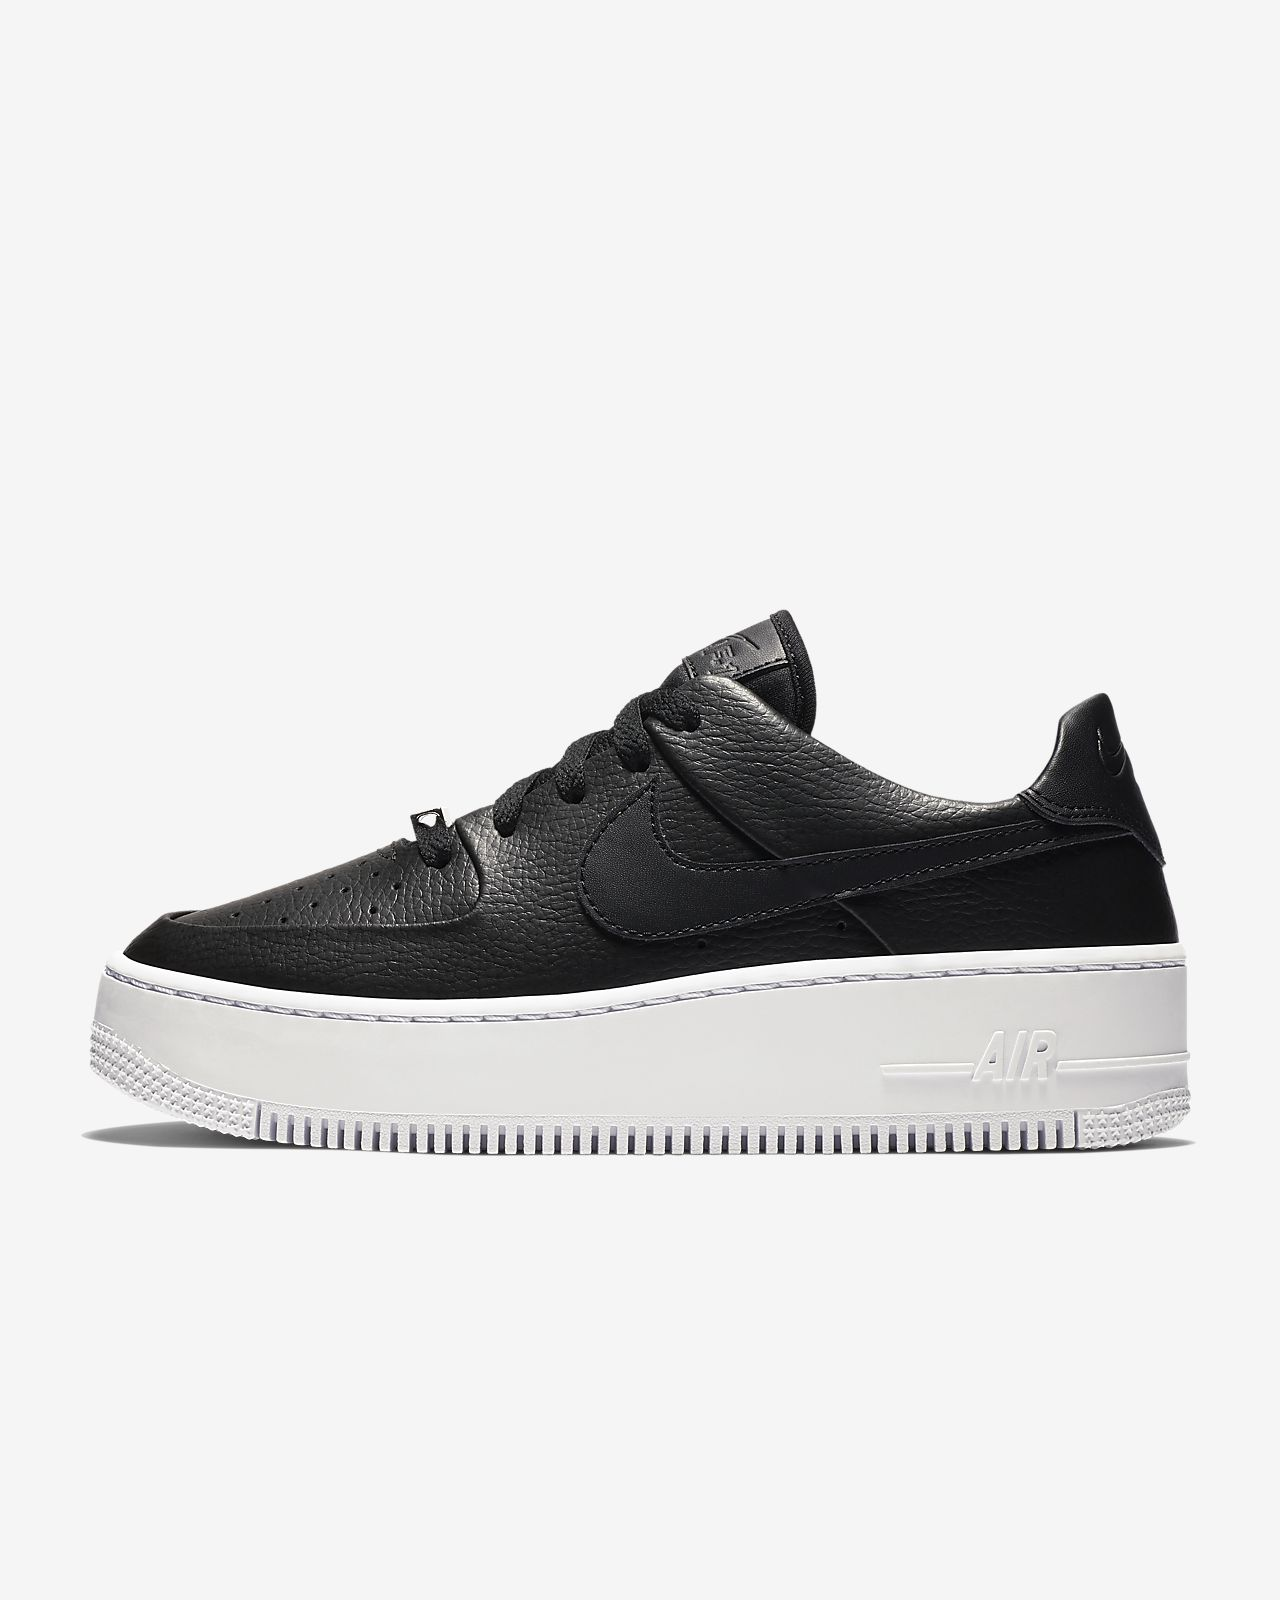 77640b1405ee Nike Air Force 1 Sage Low Women s Shoe. Nike.com LU